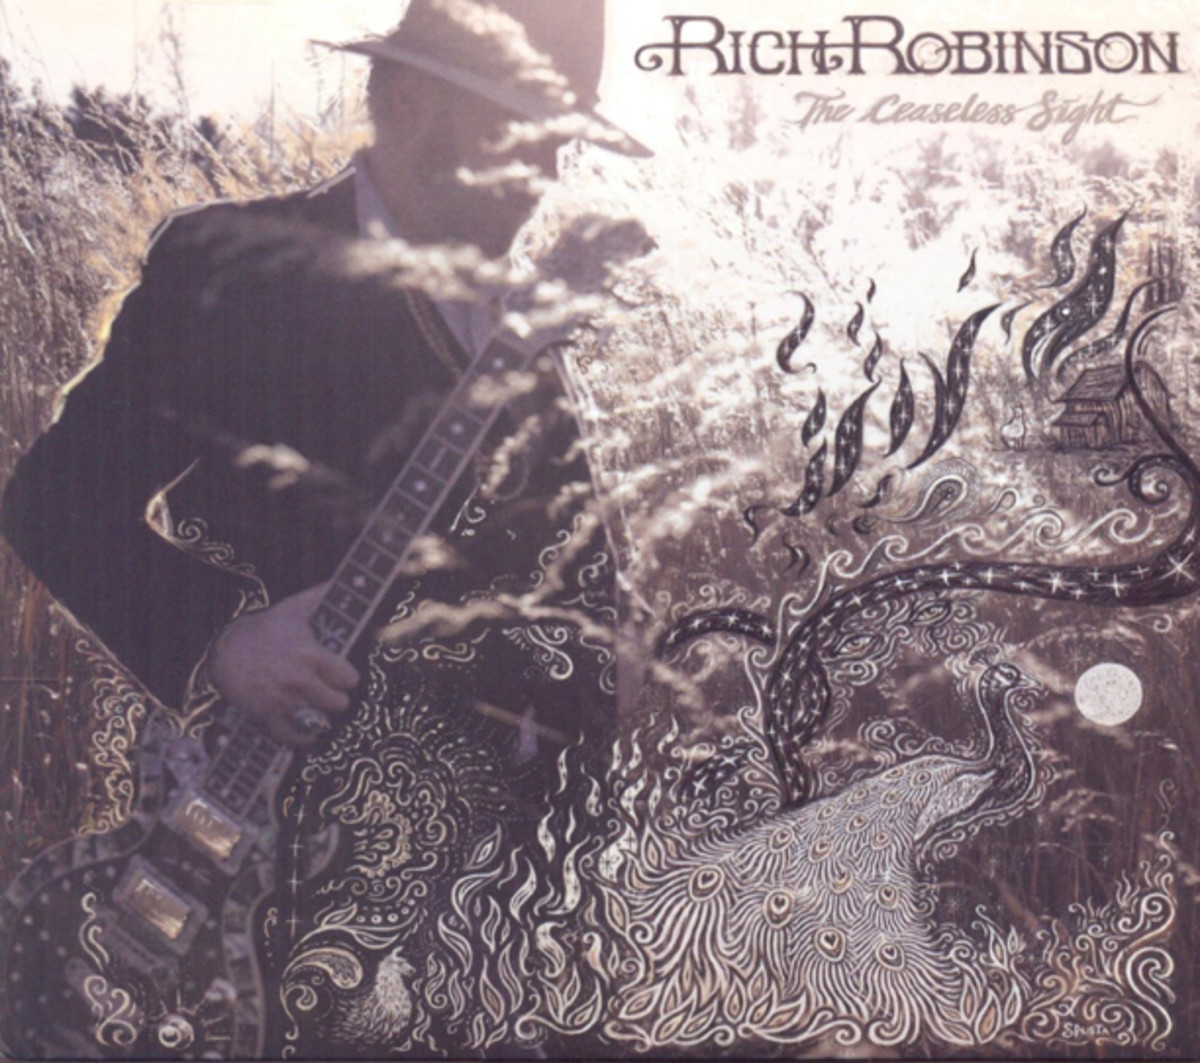 Rich Robinson The Ceaseless Sight